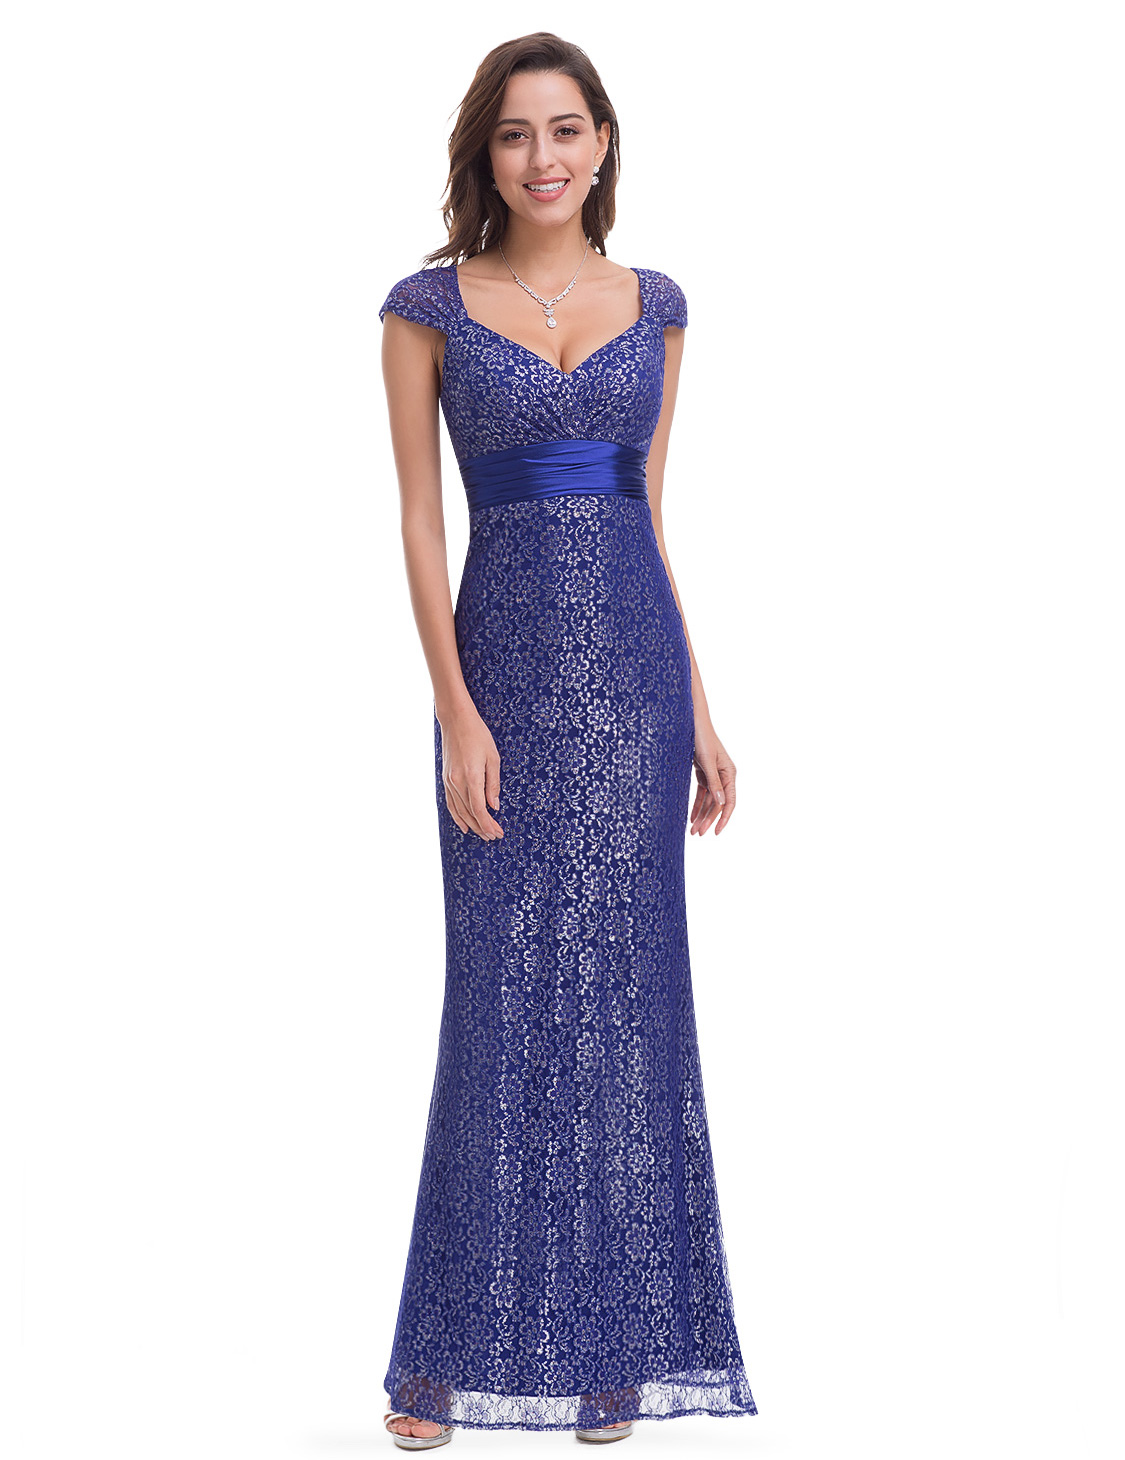 Cap-sleeve Long Evening Dresses Gown Formal Cocktail Prom Ever ...